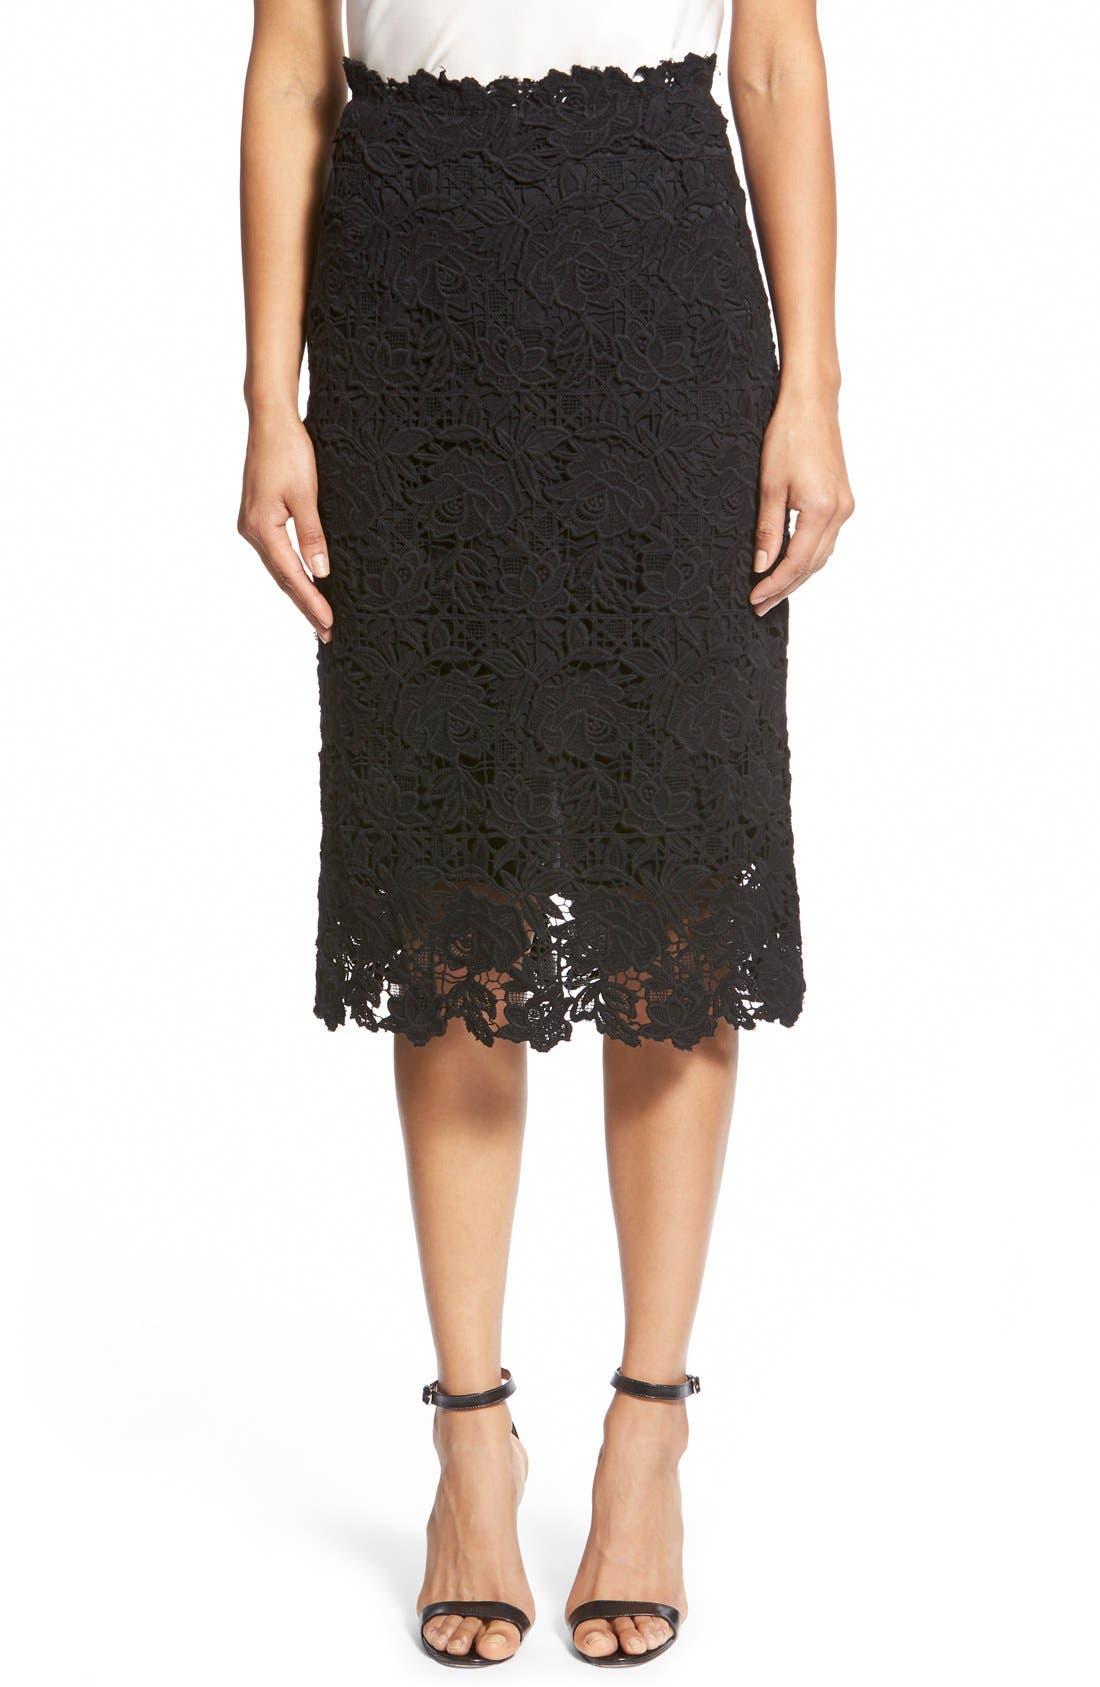 Alternate Image 1 Selected - Kobi Halperin 'Tatiana' Lace Skirt